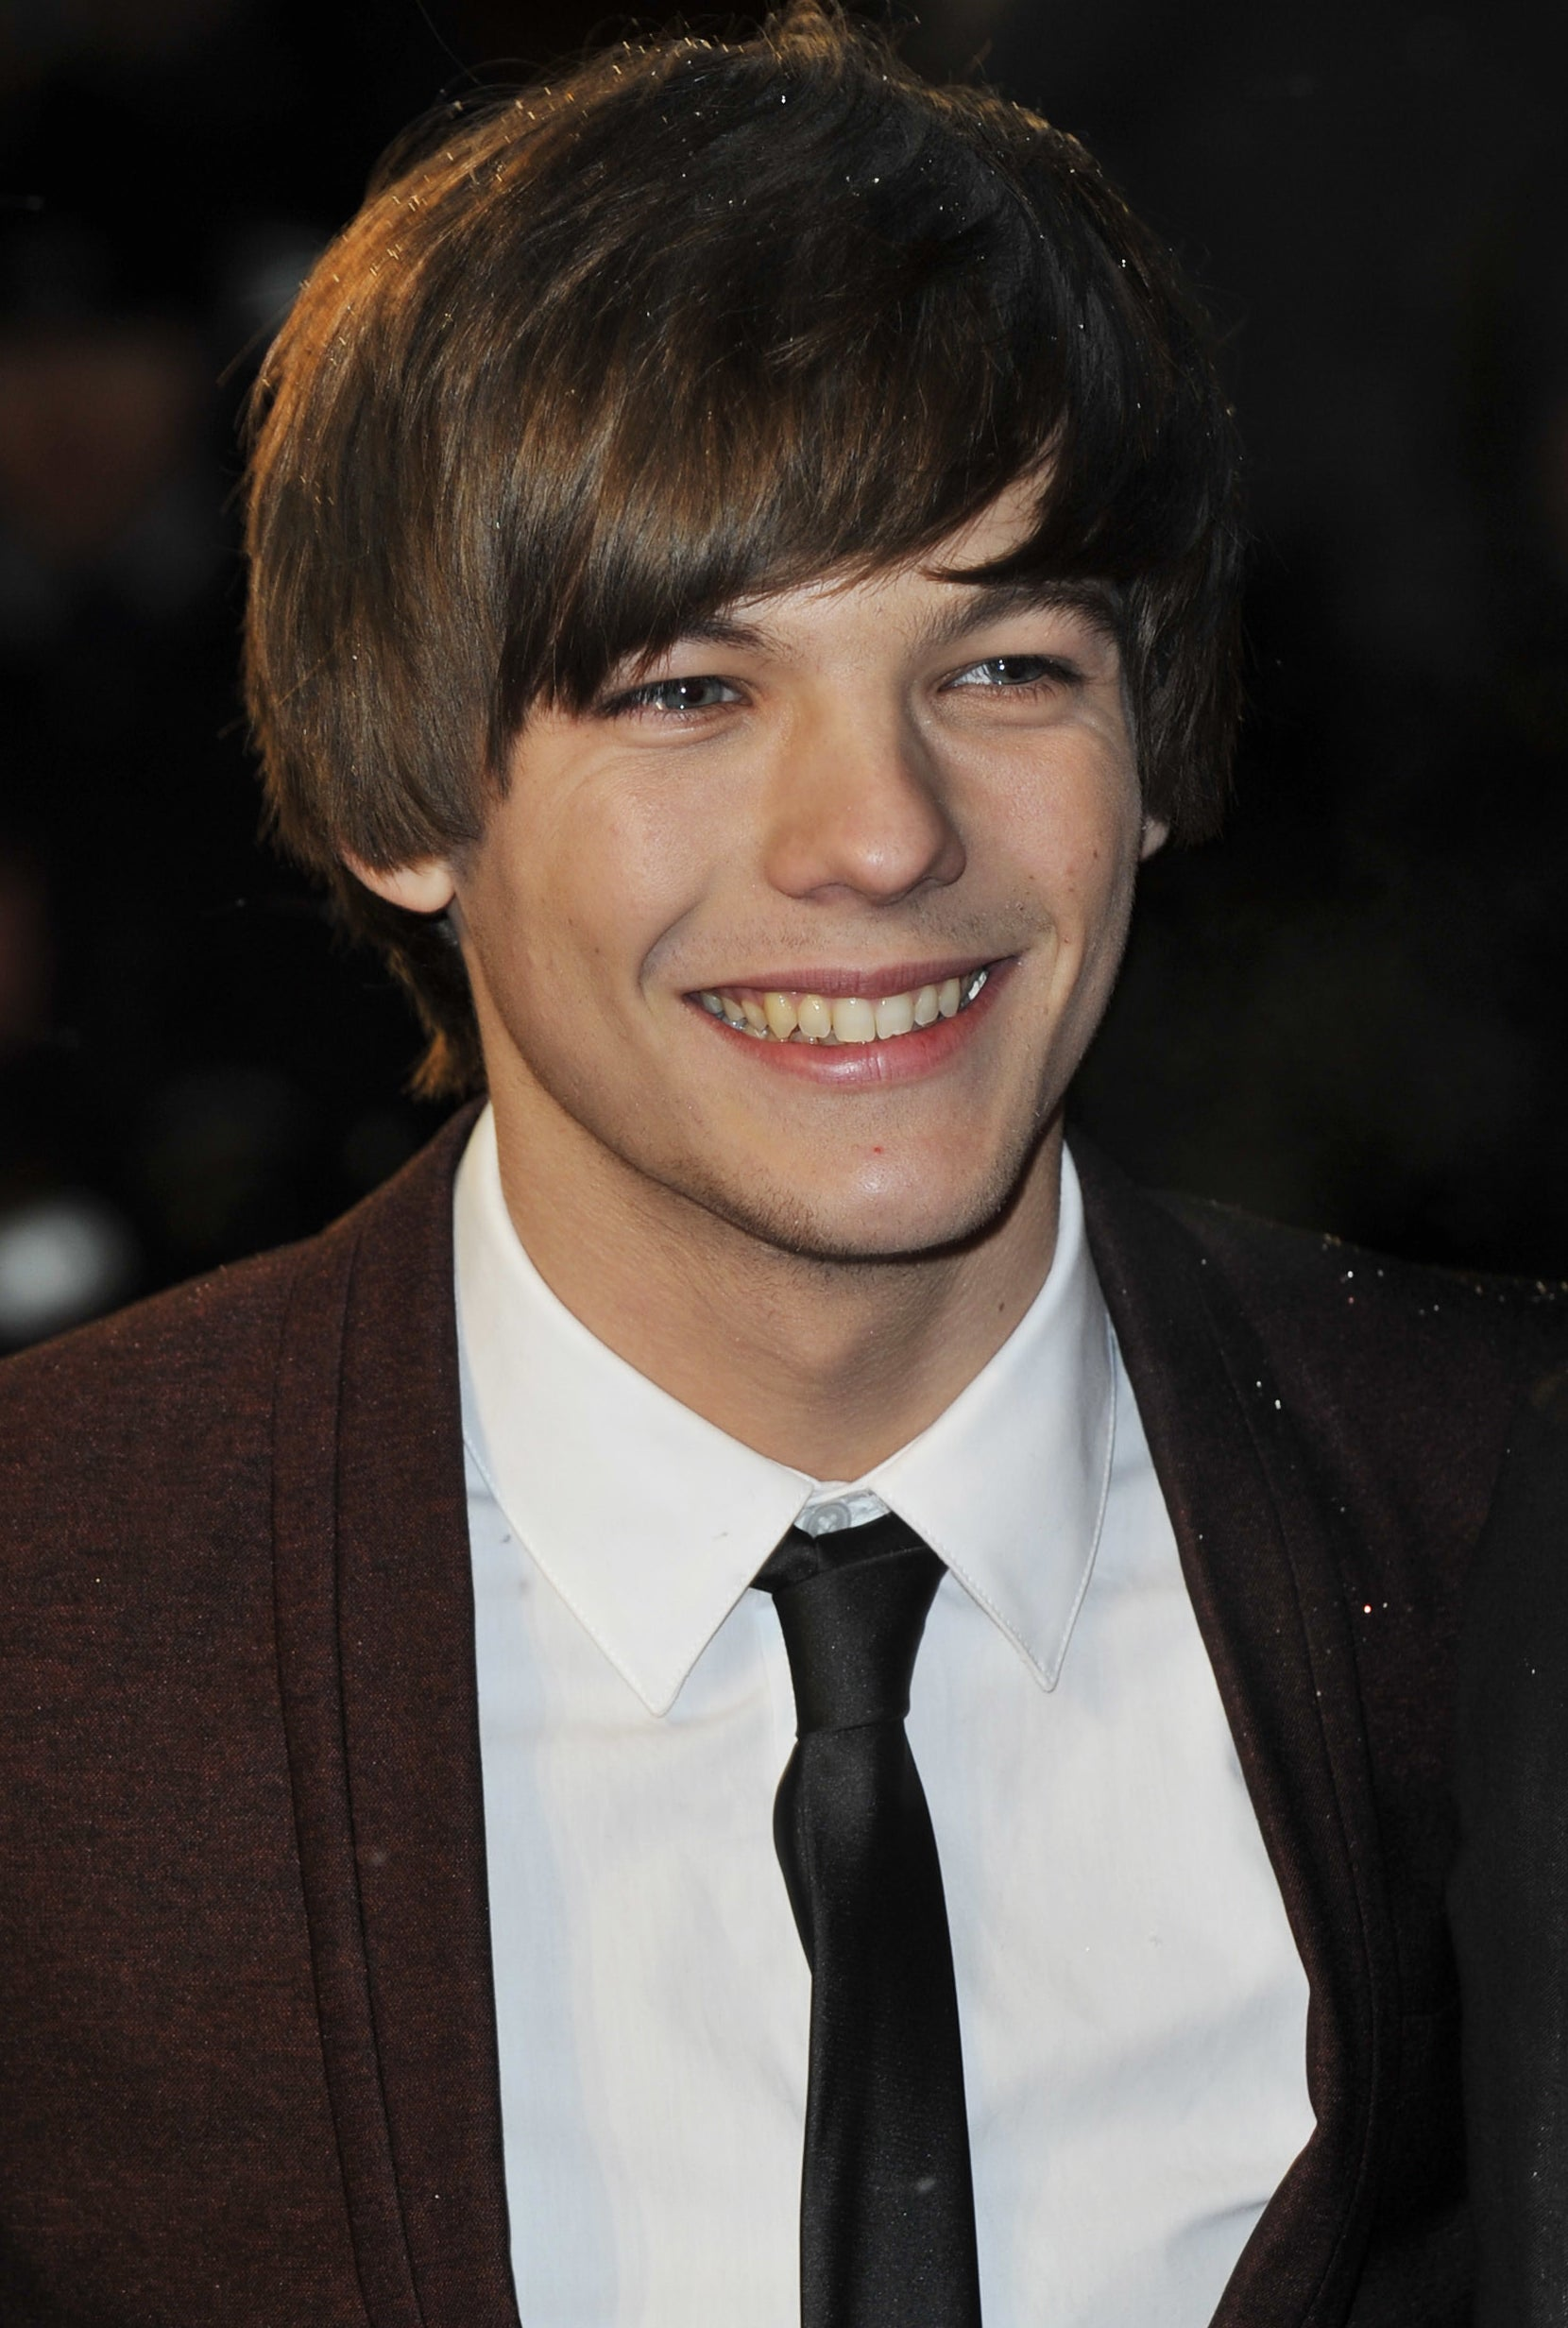 Louis Tomlinson attending a movie premiere in 2010